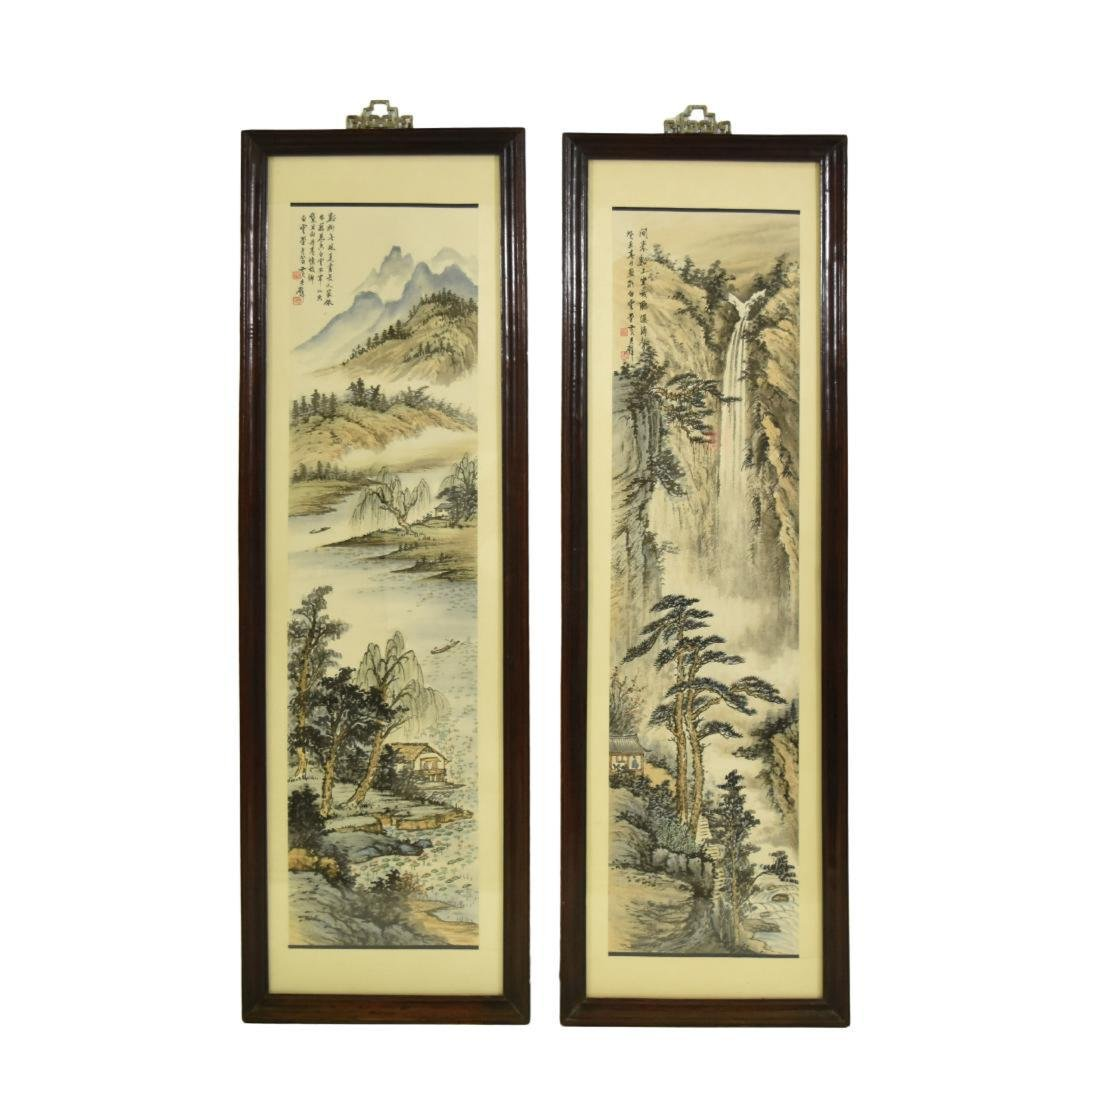 PAIR OF FRAMED CHINESE LANDSCAPE PAINTINGS